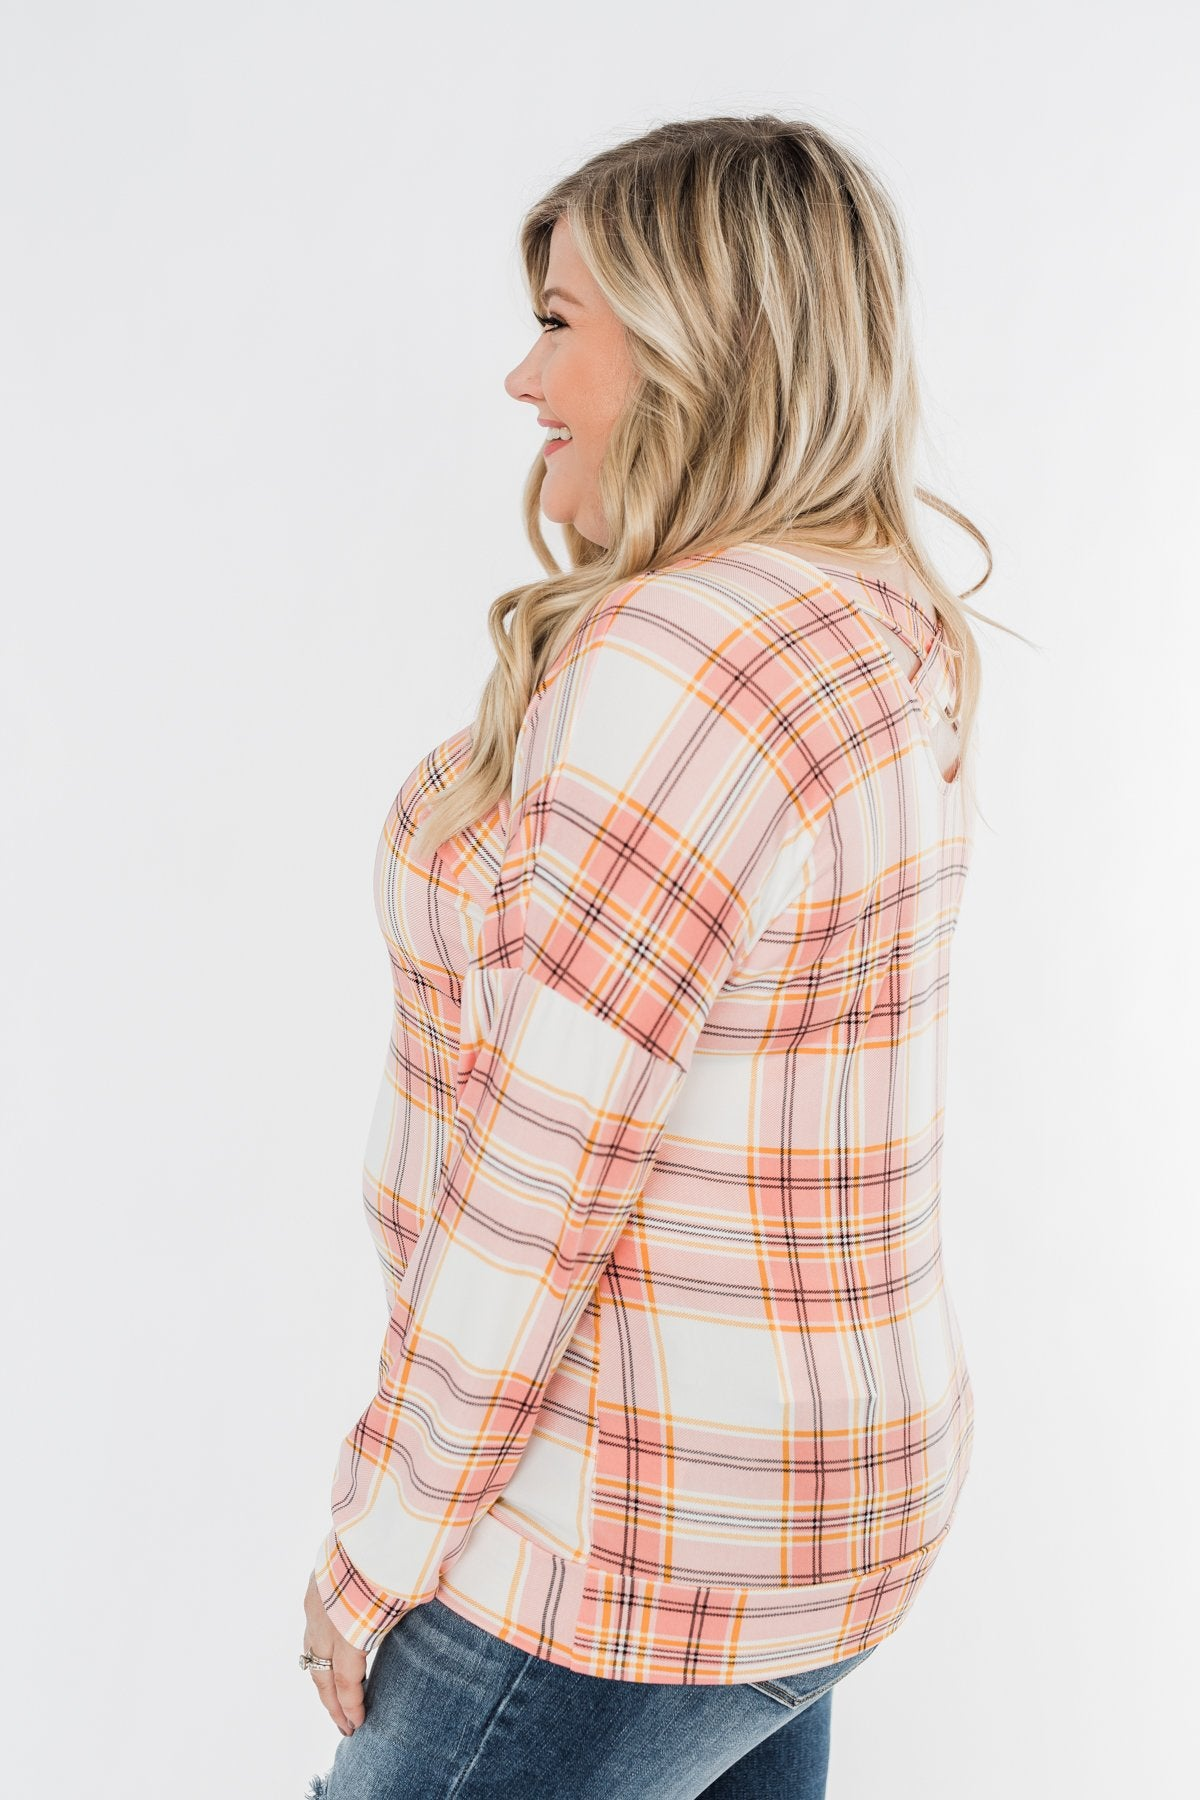 Hey Girl Plaid Criss Cross Top- Pink, Orange, & Ivory